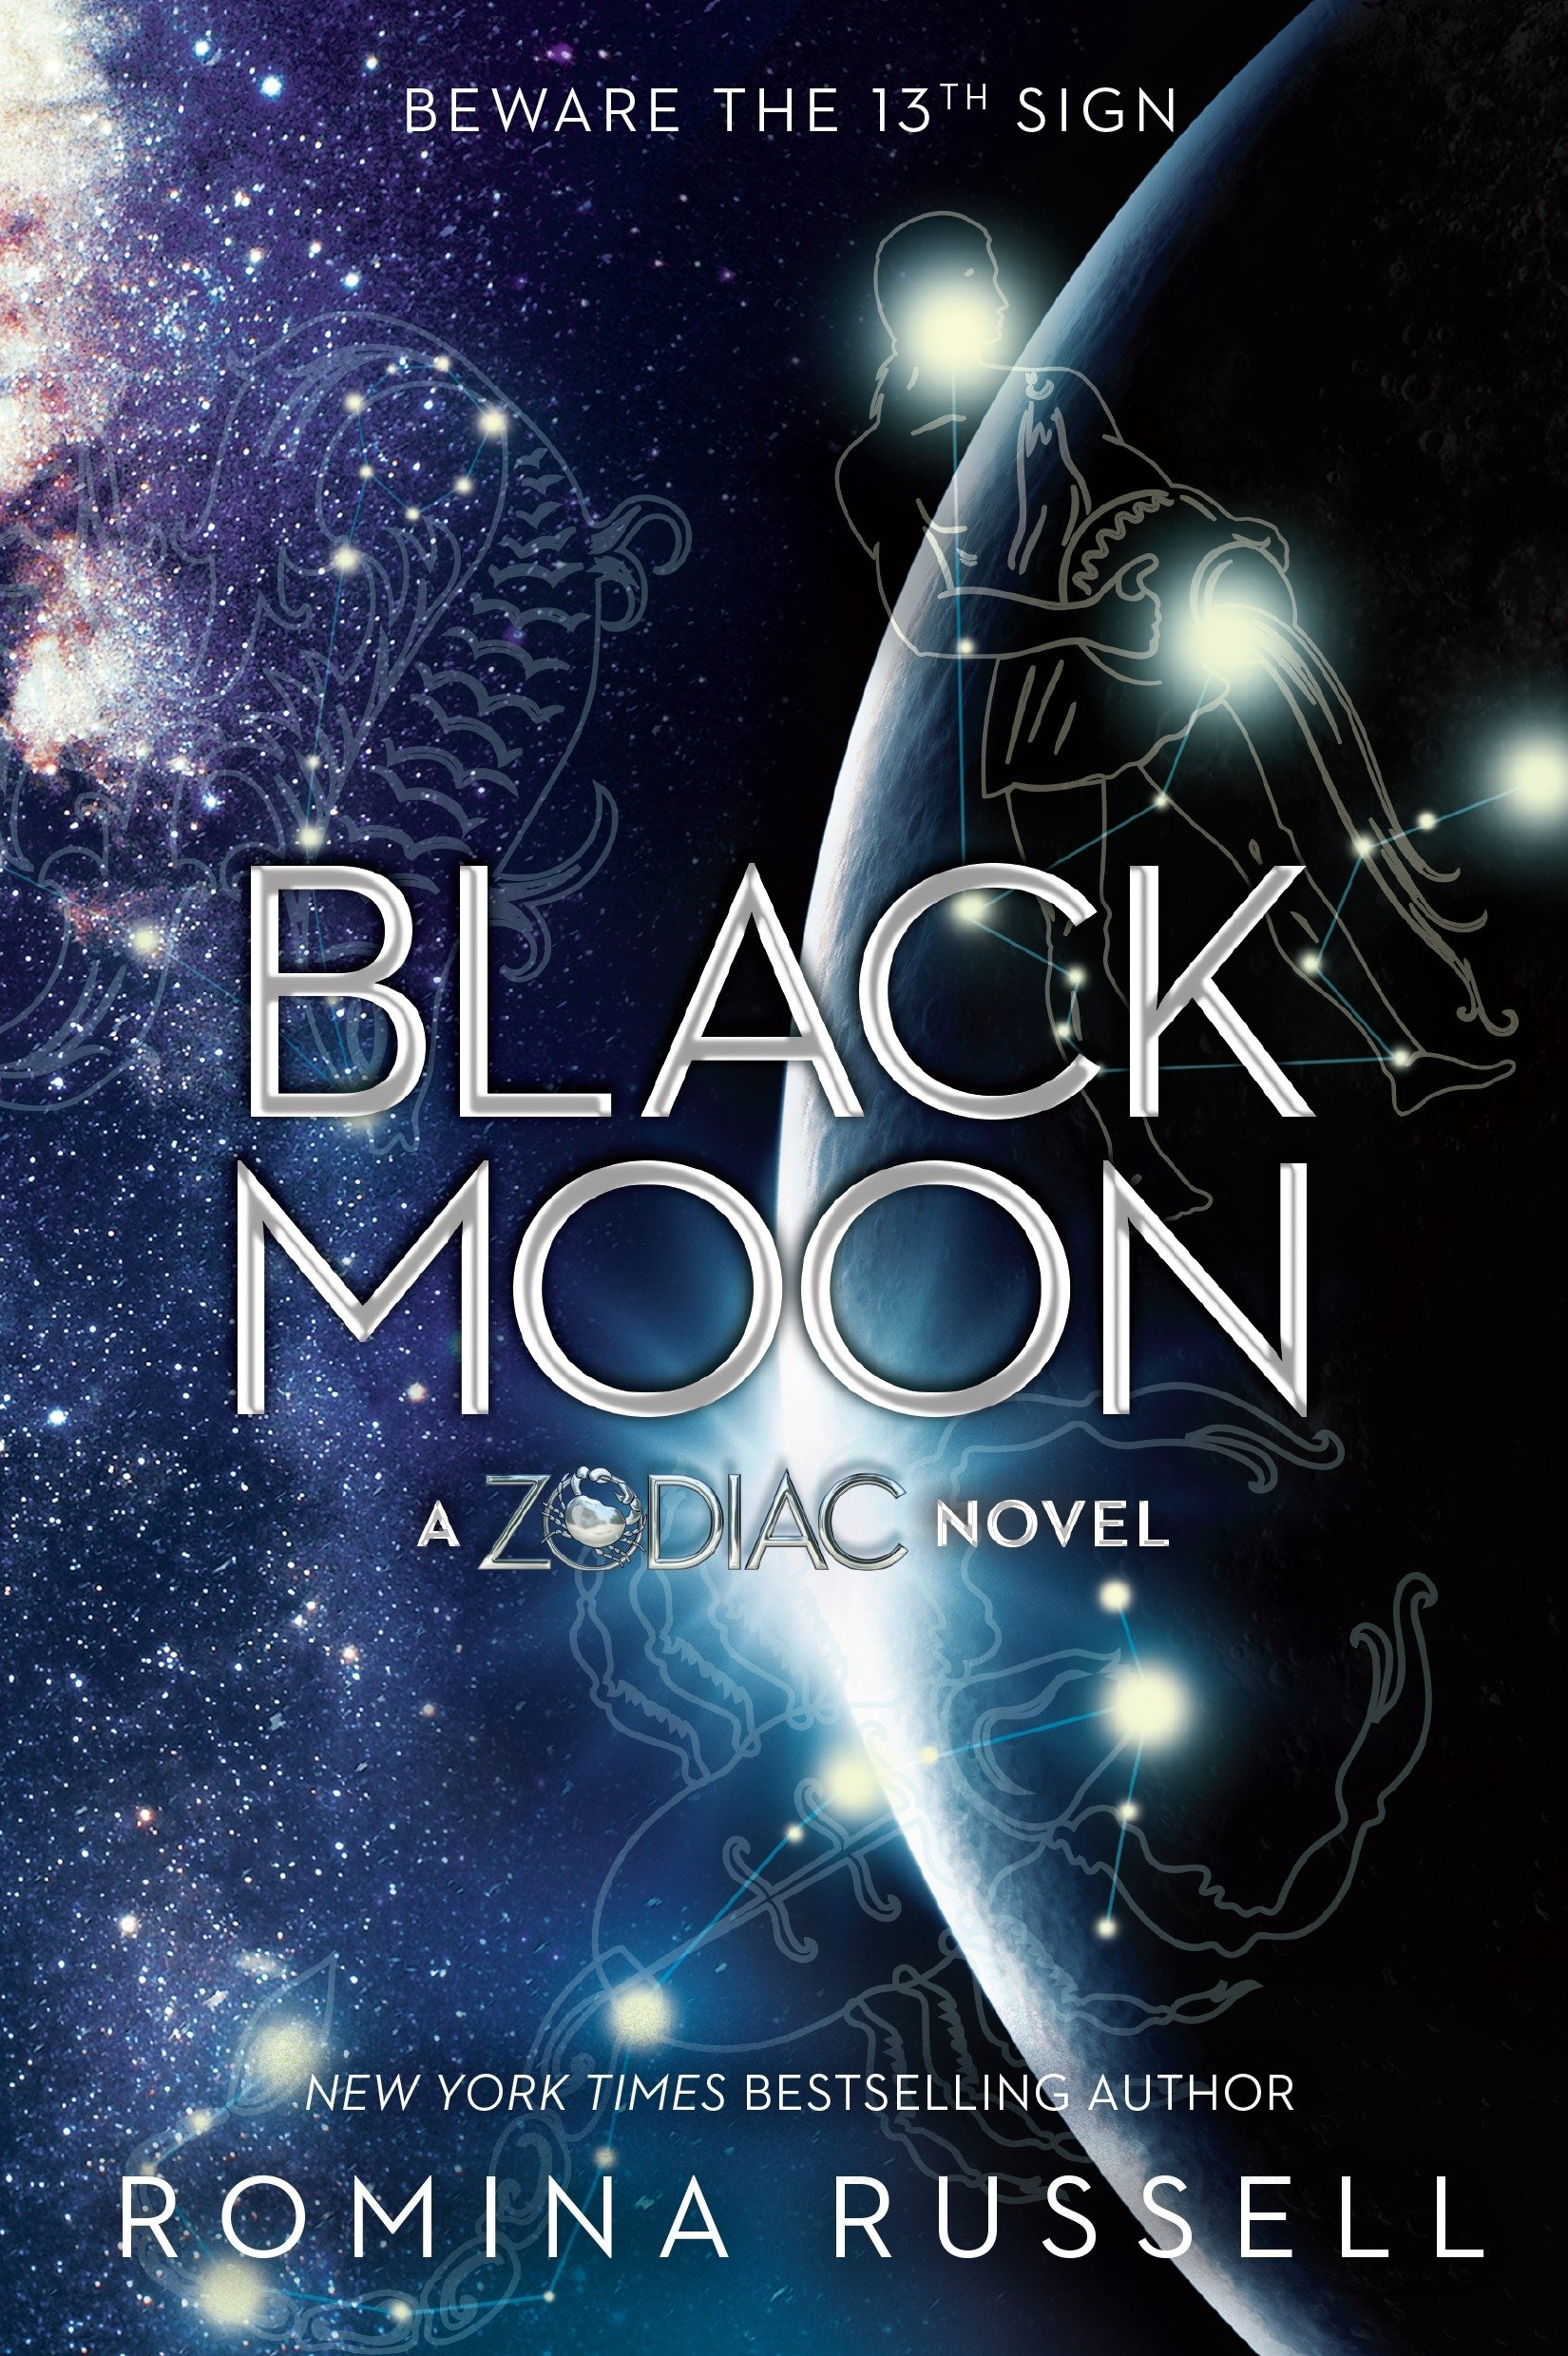 Amazon.com: Black Moon (Zodiac) (9781595147462): Russell, Romina: Books